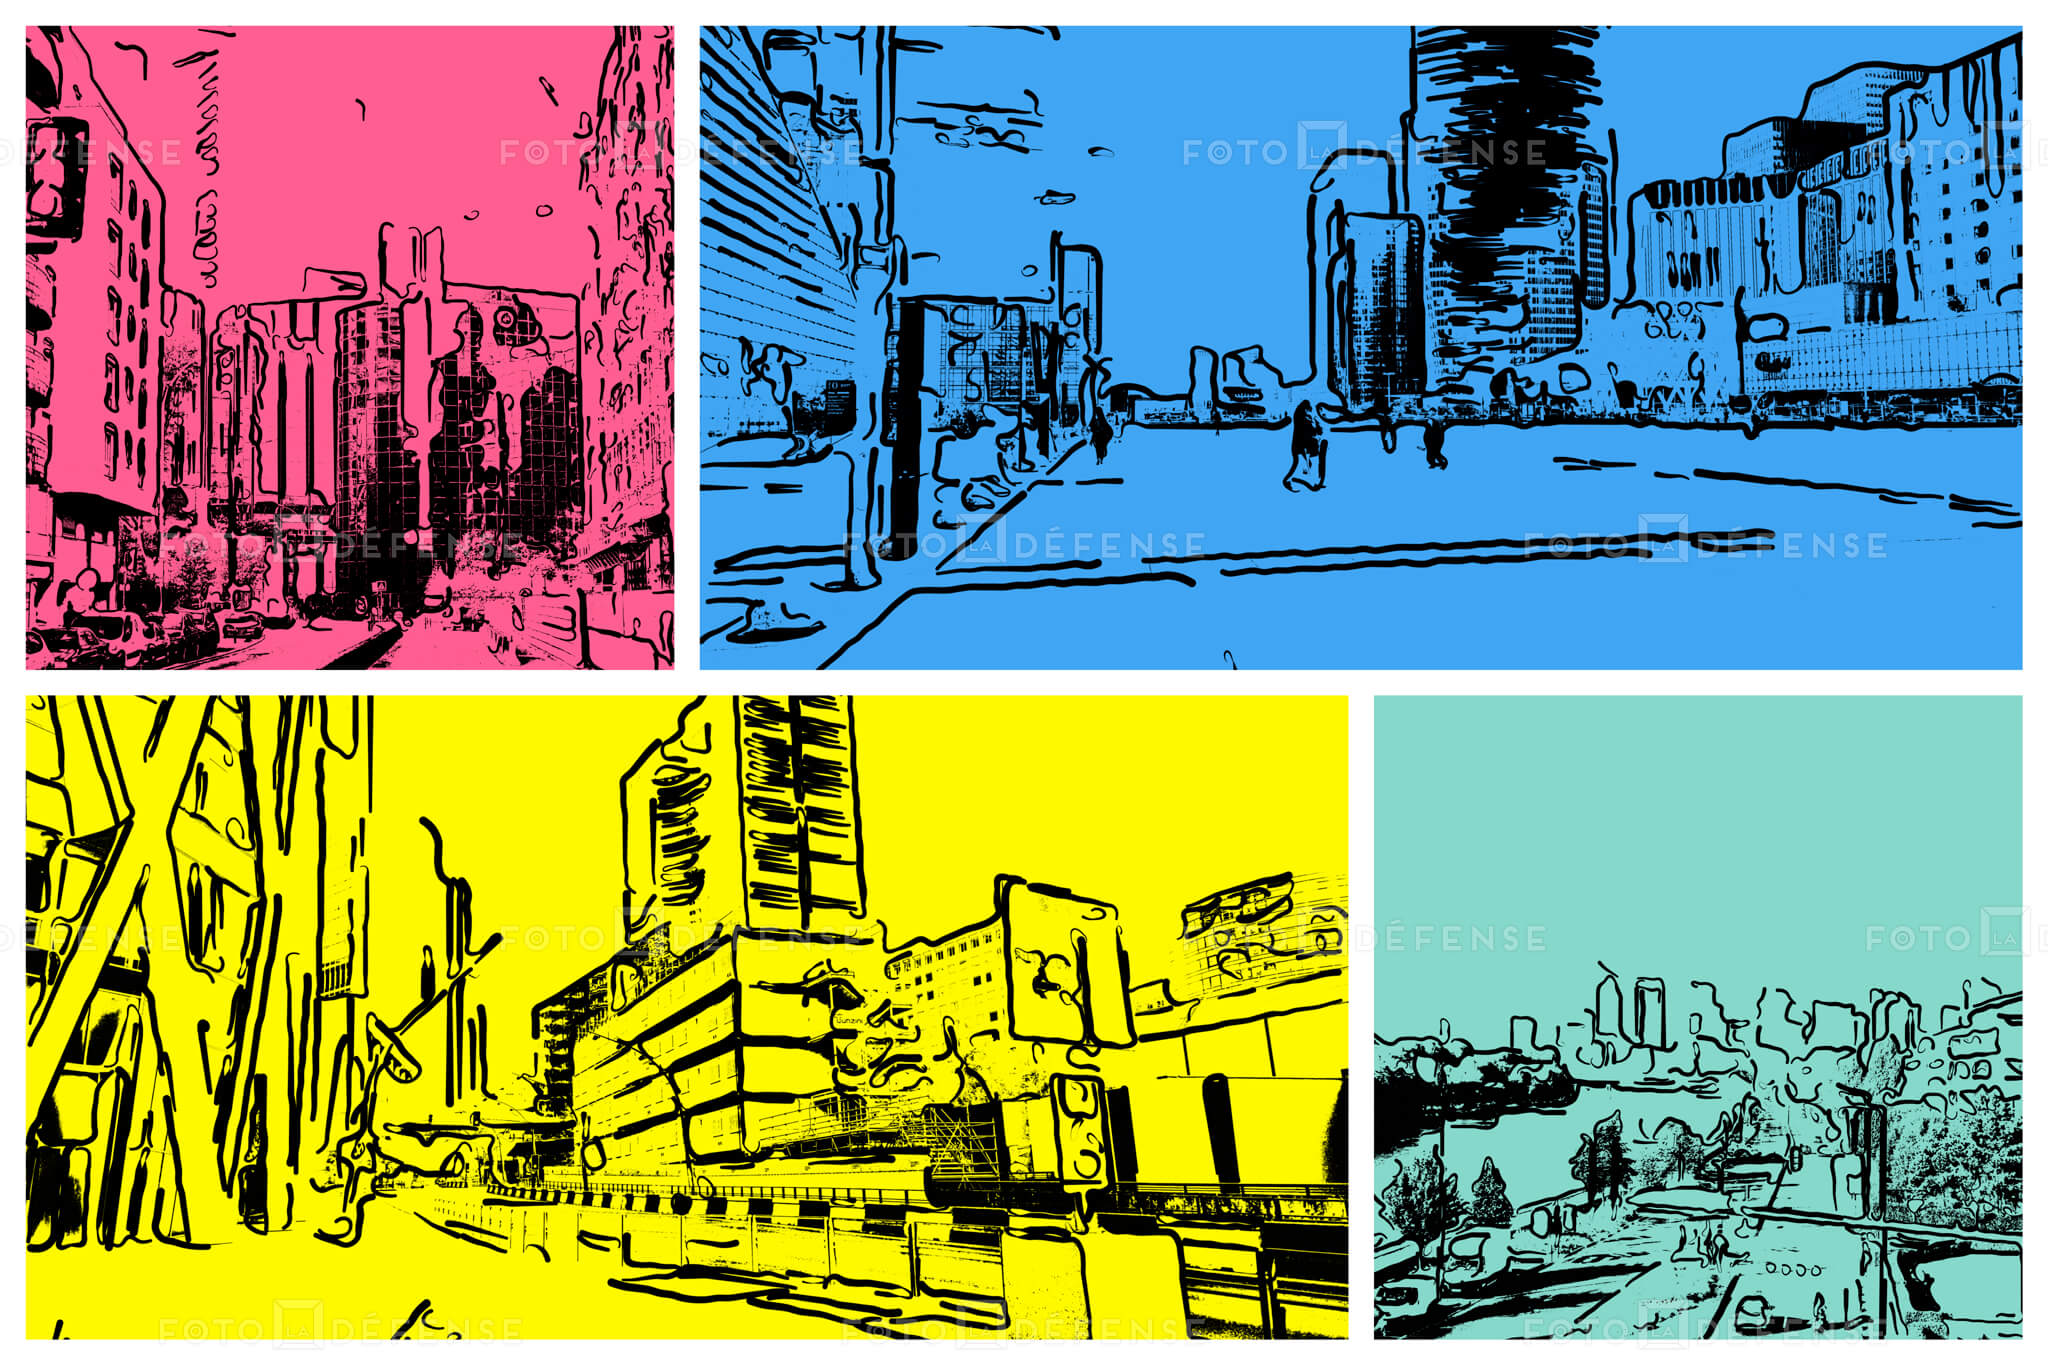 Photo Paris la Defense pop art